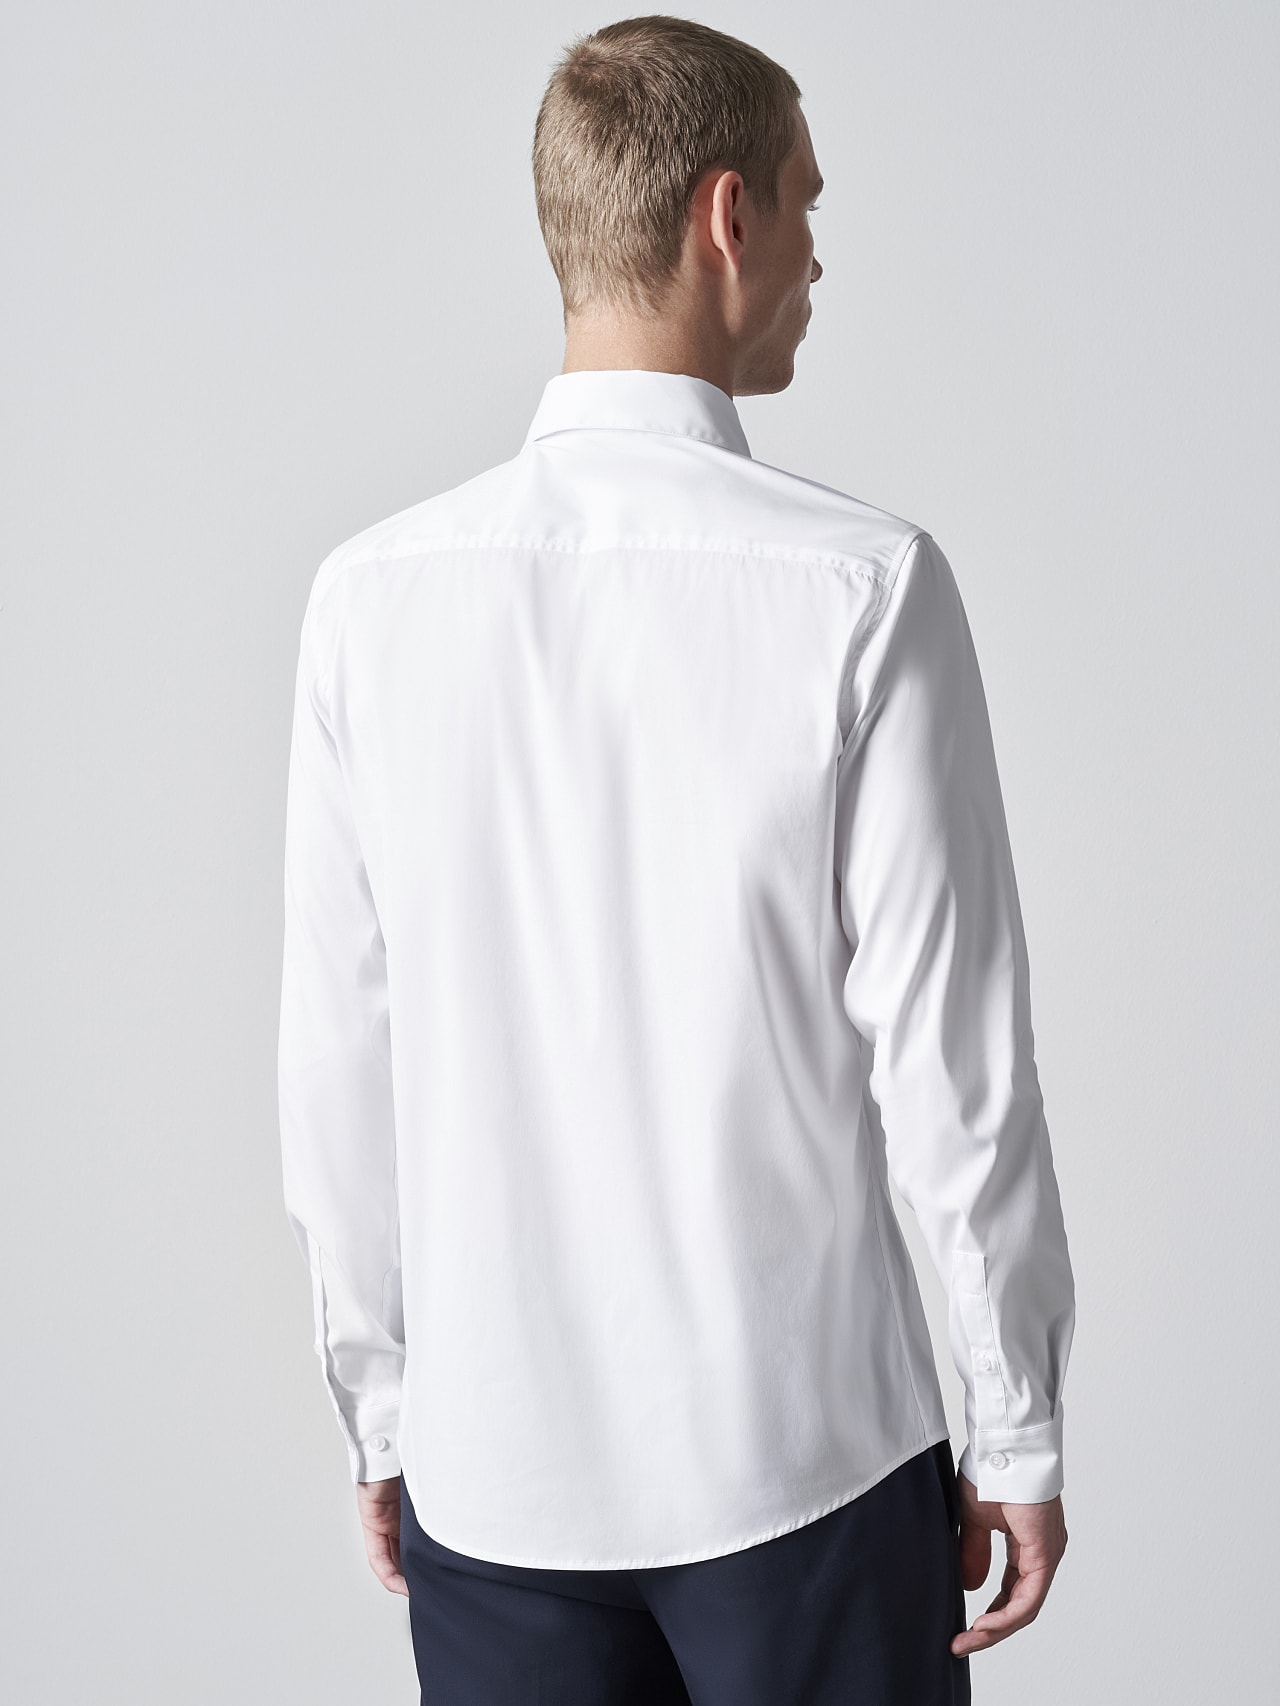 WAARG V2.Y5.02 Easy-Care Cotton Shirt white Front Main Alpha Tauri